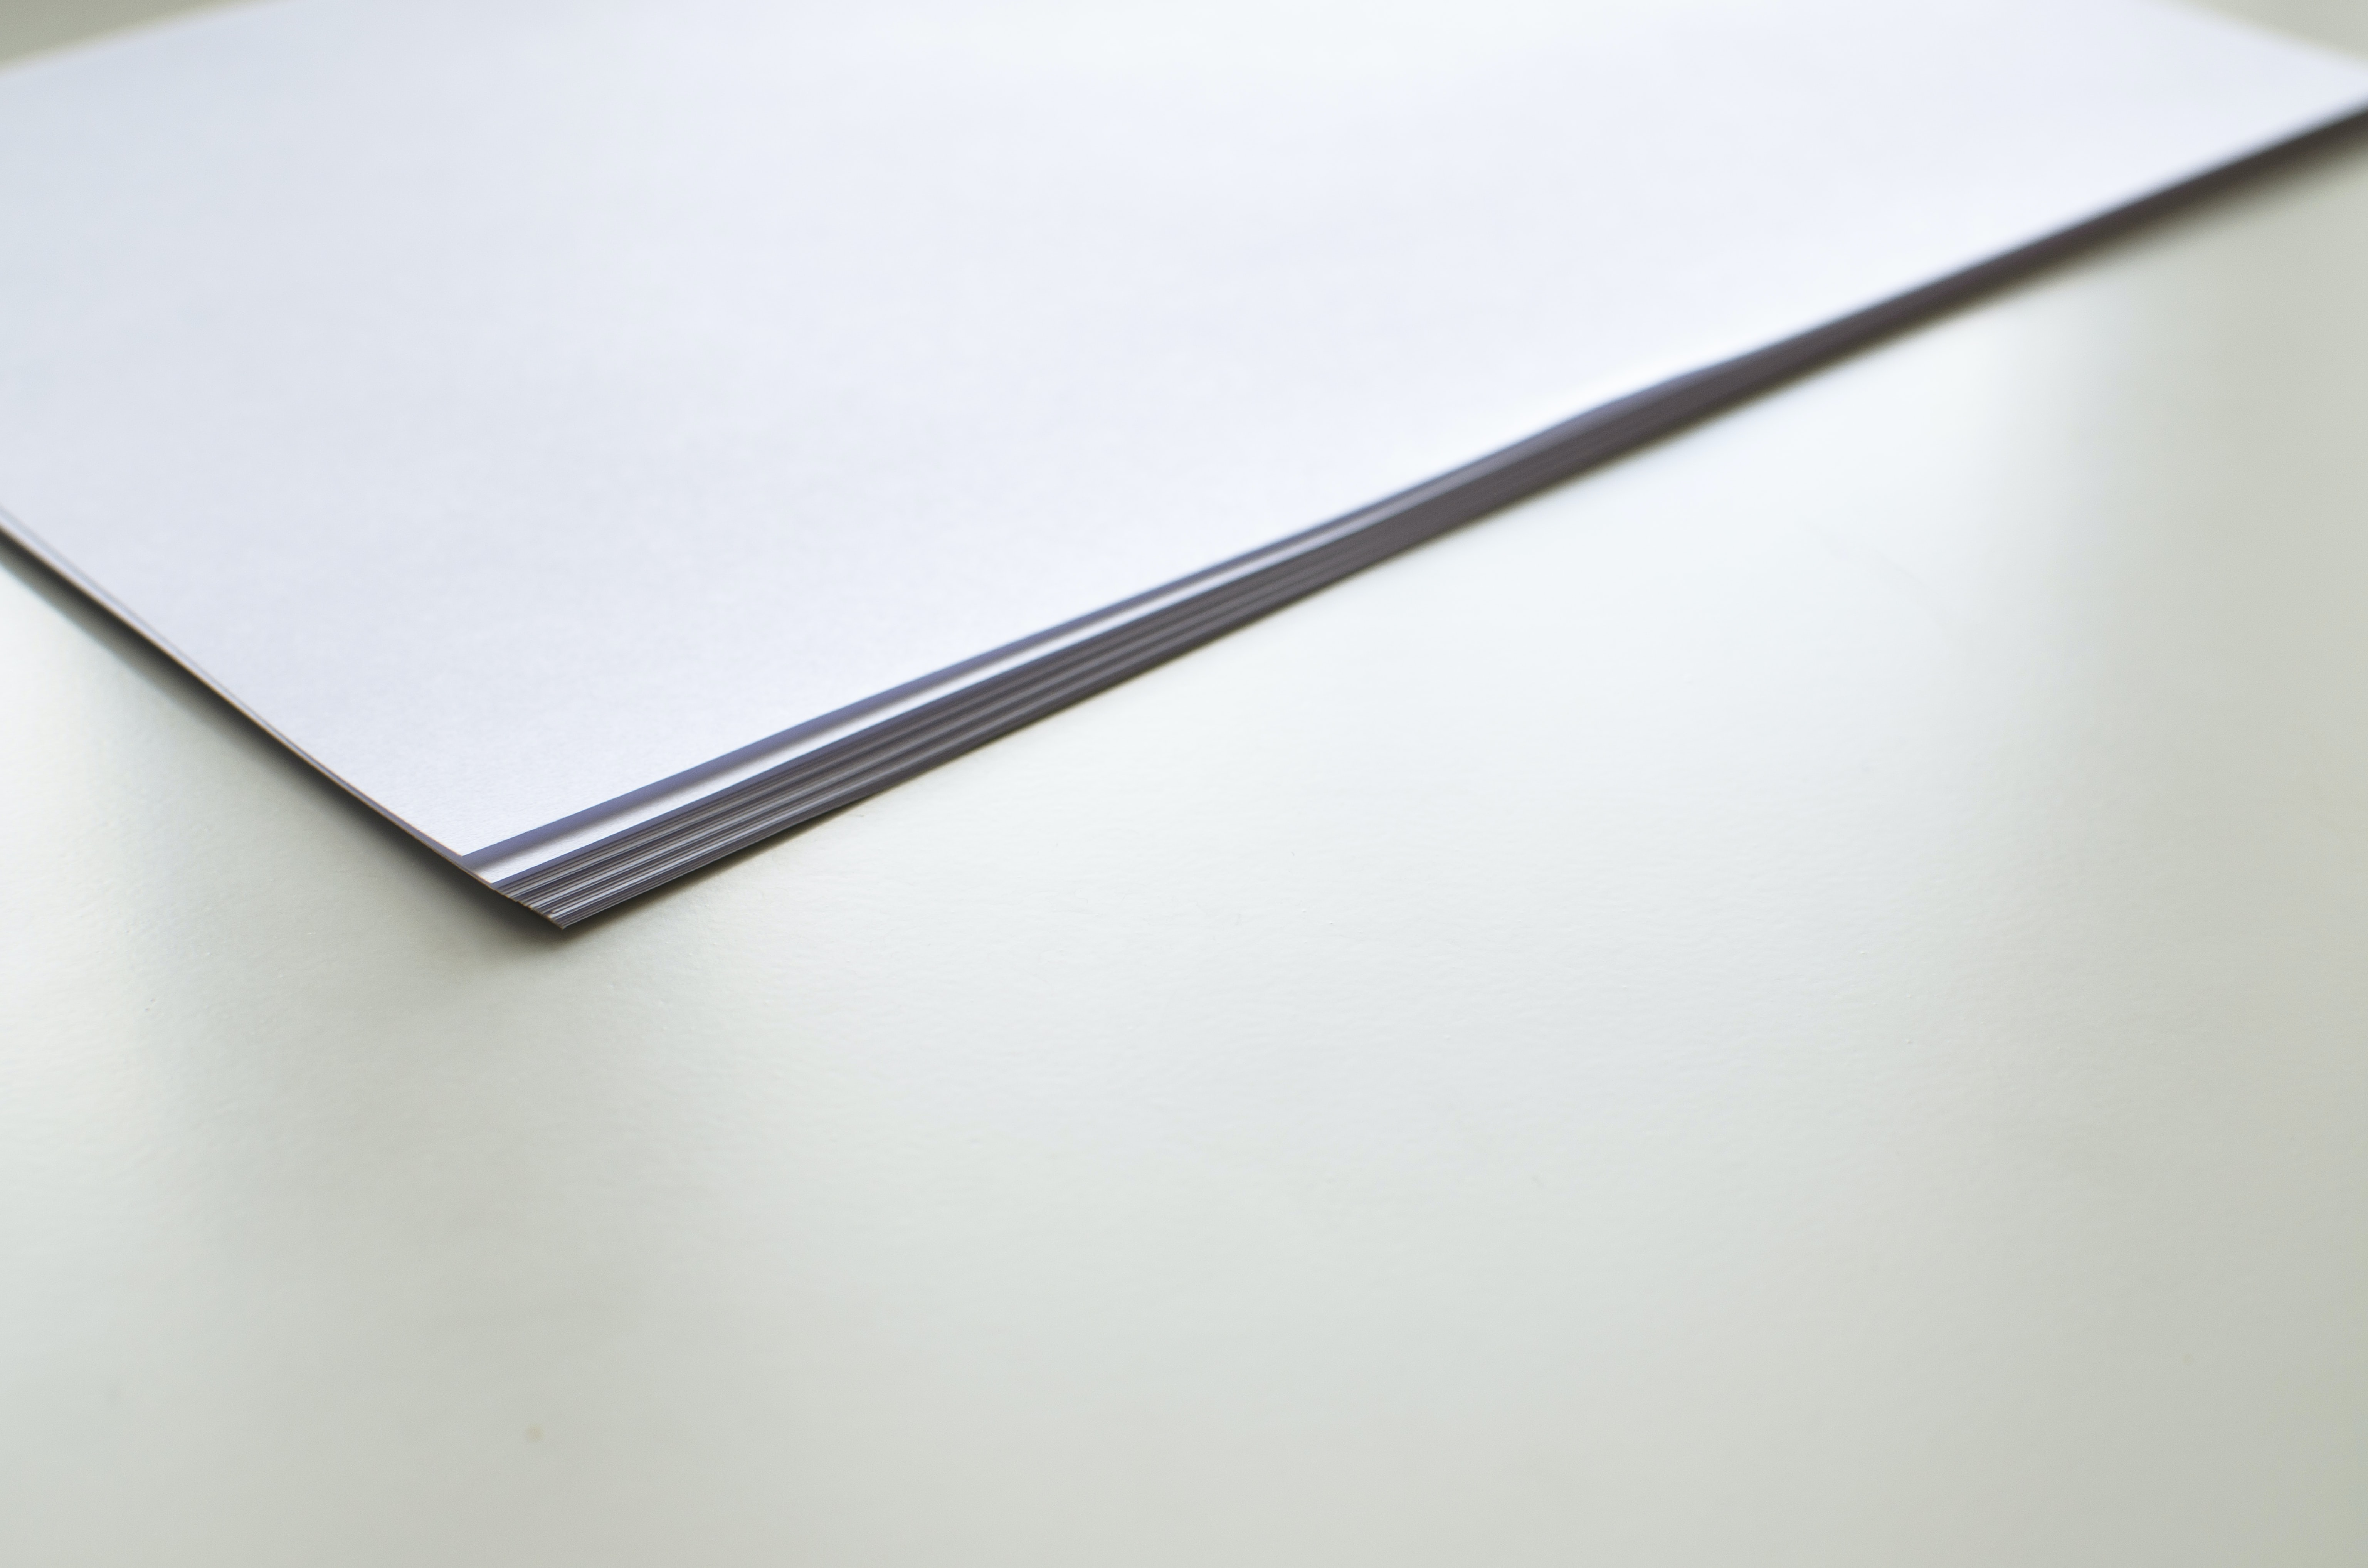 A stack of white paper sheets on a white surface